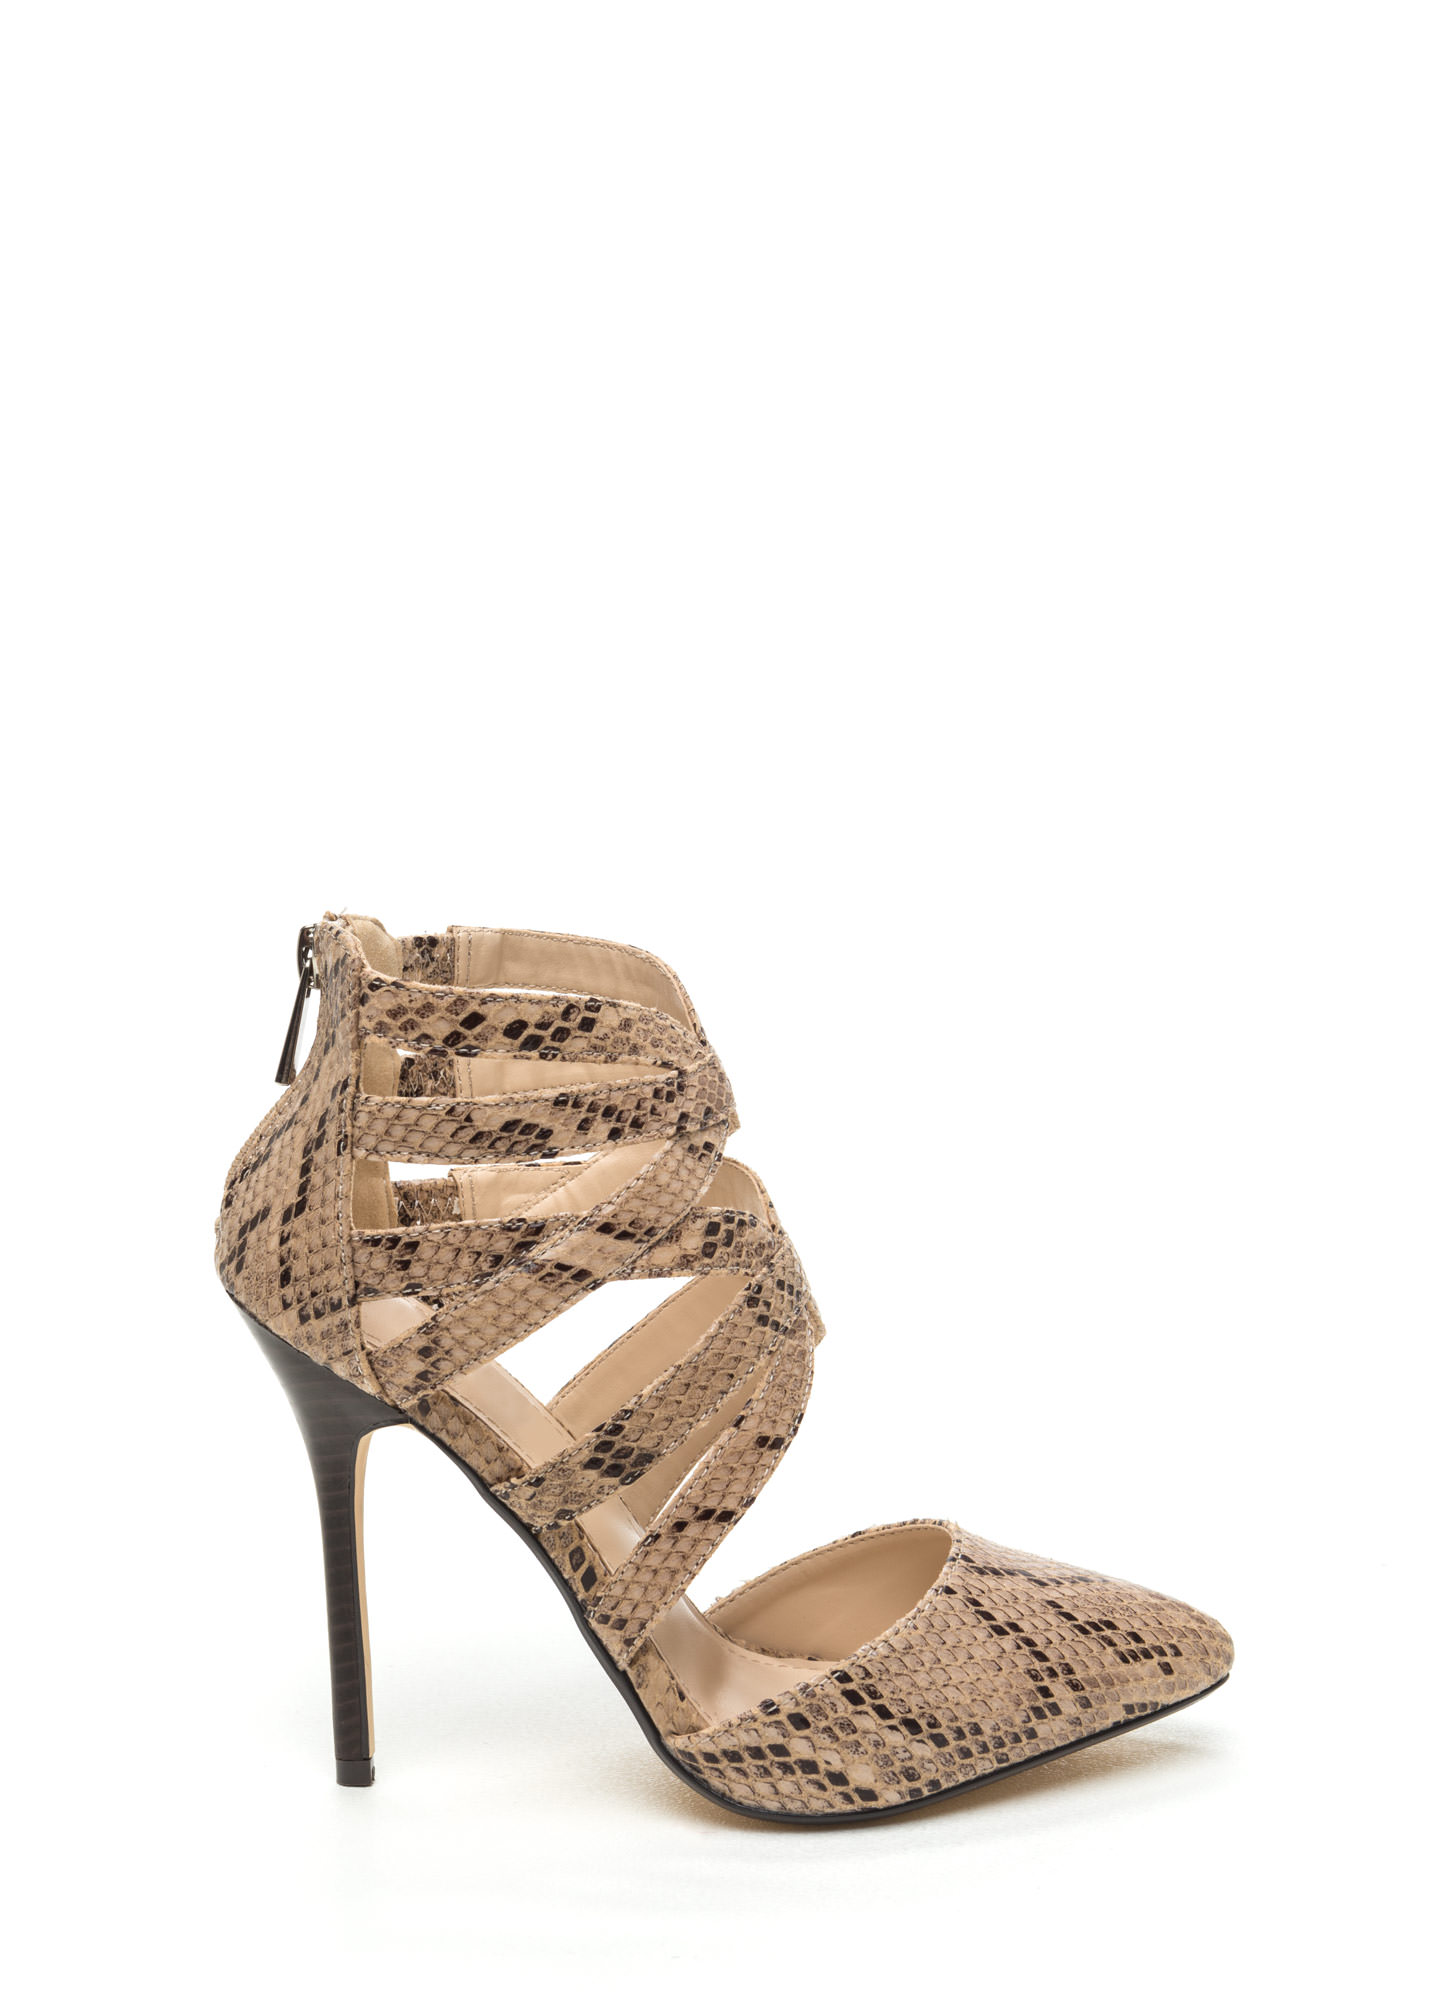 Caged Take Pointy Toe Heels NATURAL